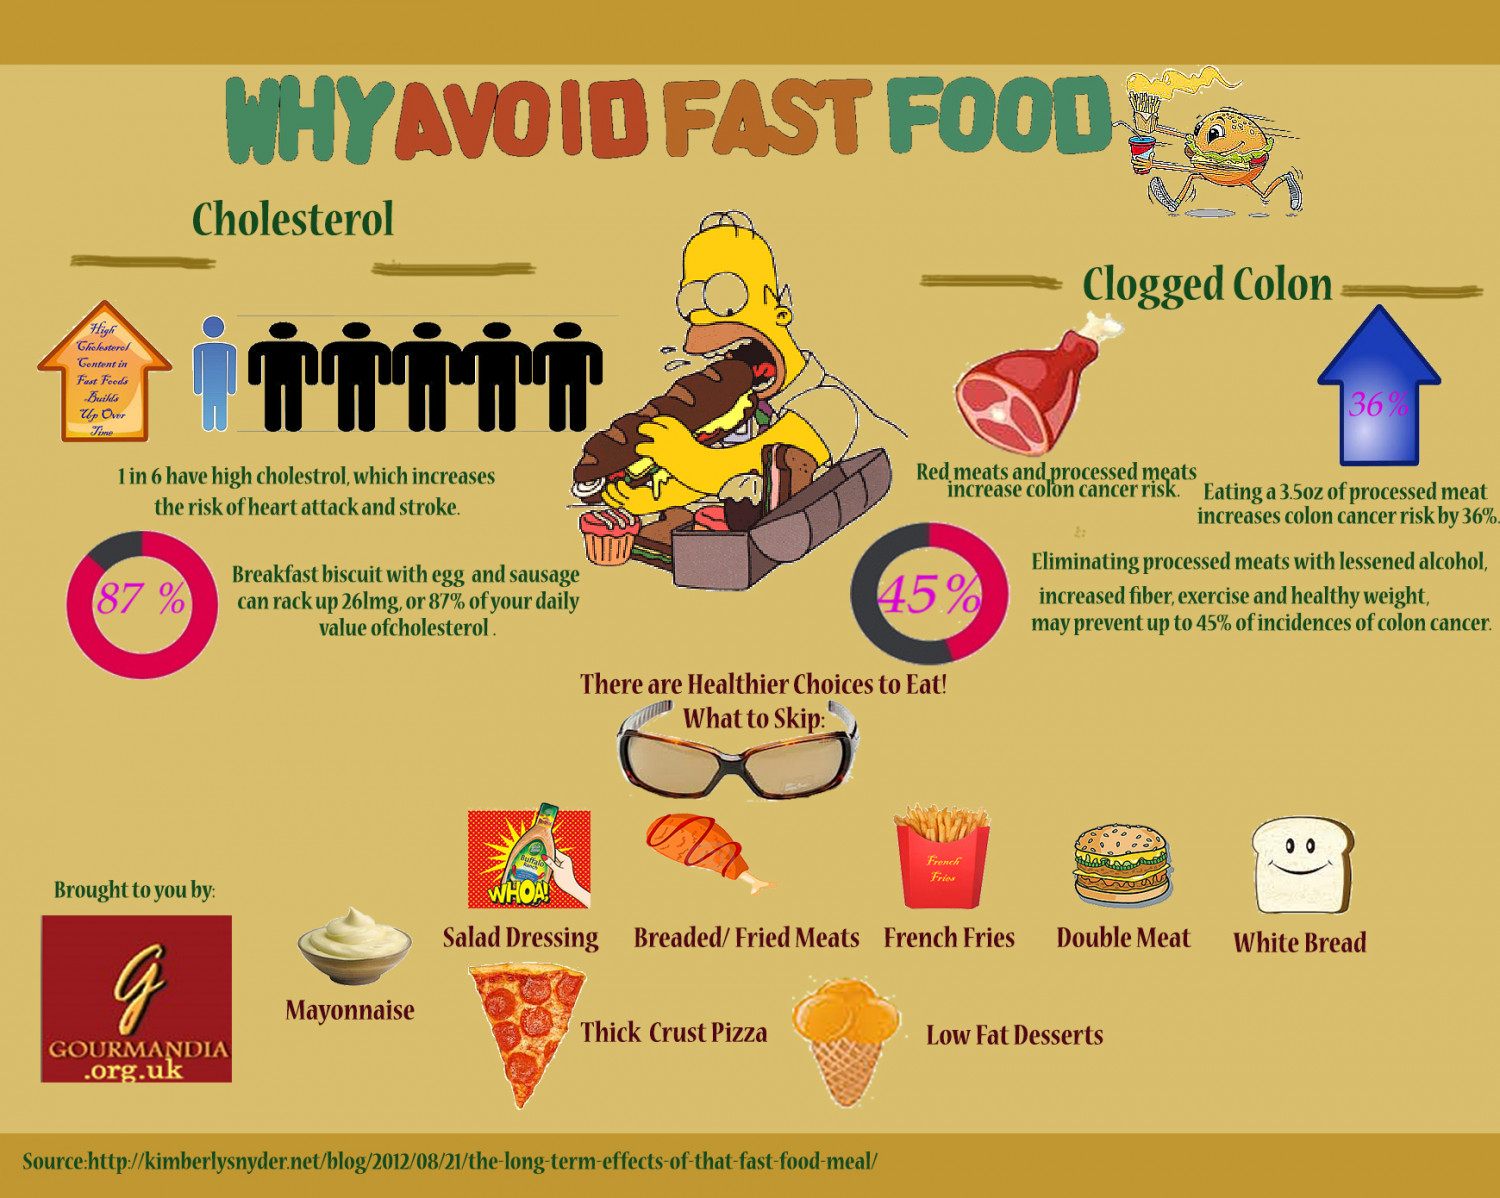 Why Avoid Fast Food